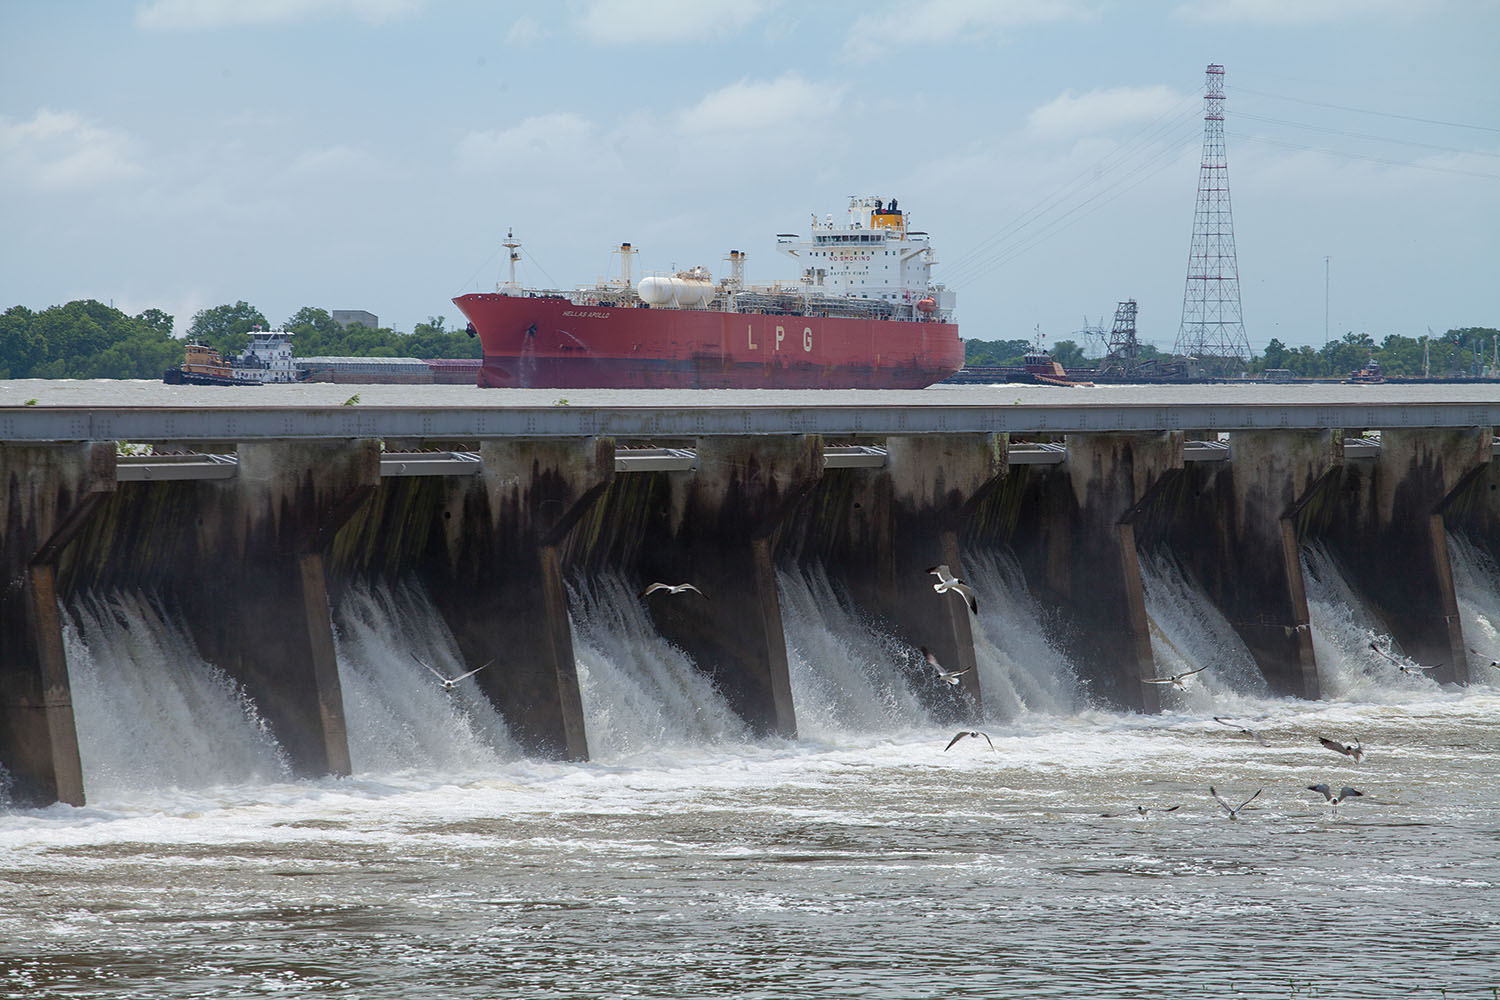 A tanker on the Mississippi River passes the Bonnet Carré Spillway in May 2019, during one of the spillways two high-water openings that year. (Photo by Frank McCormack)